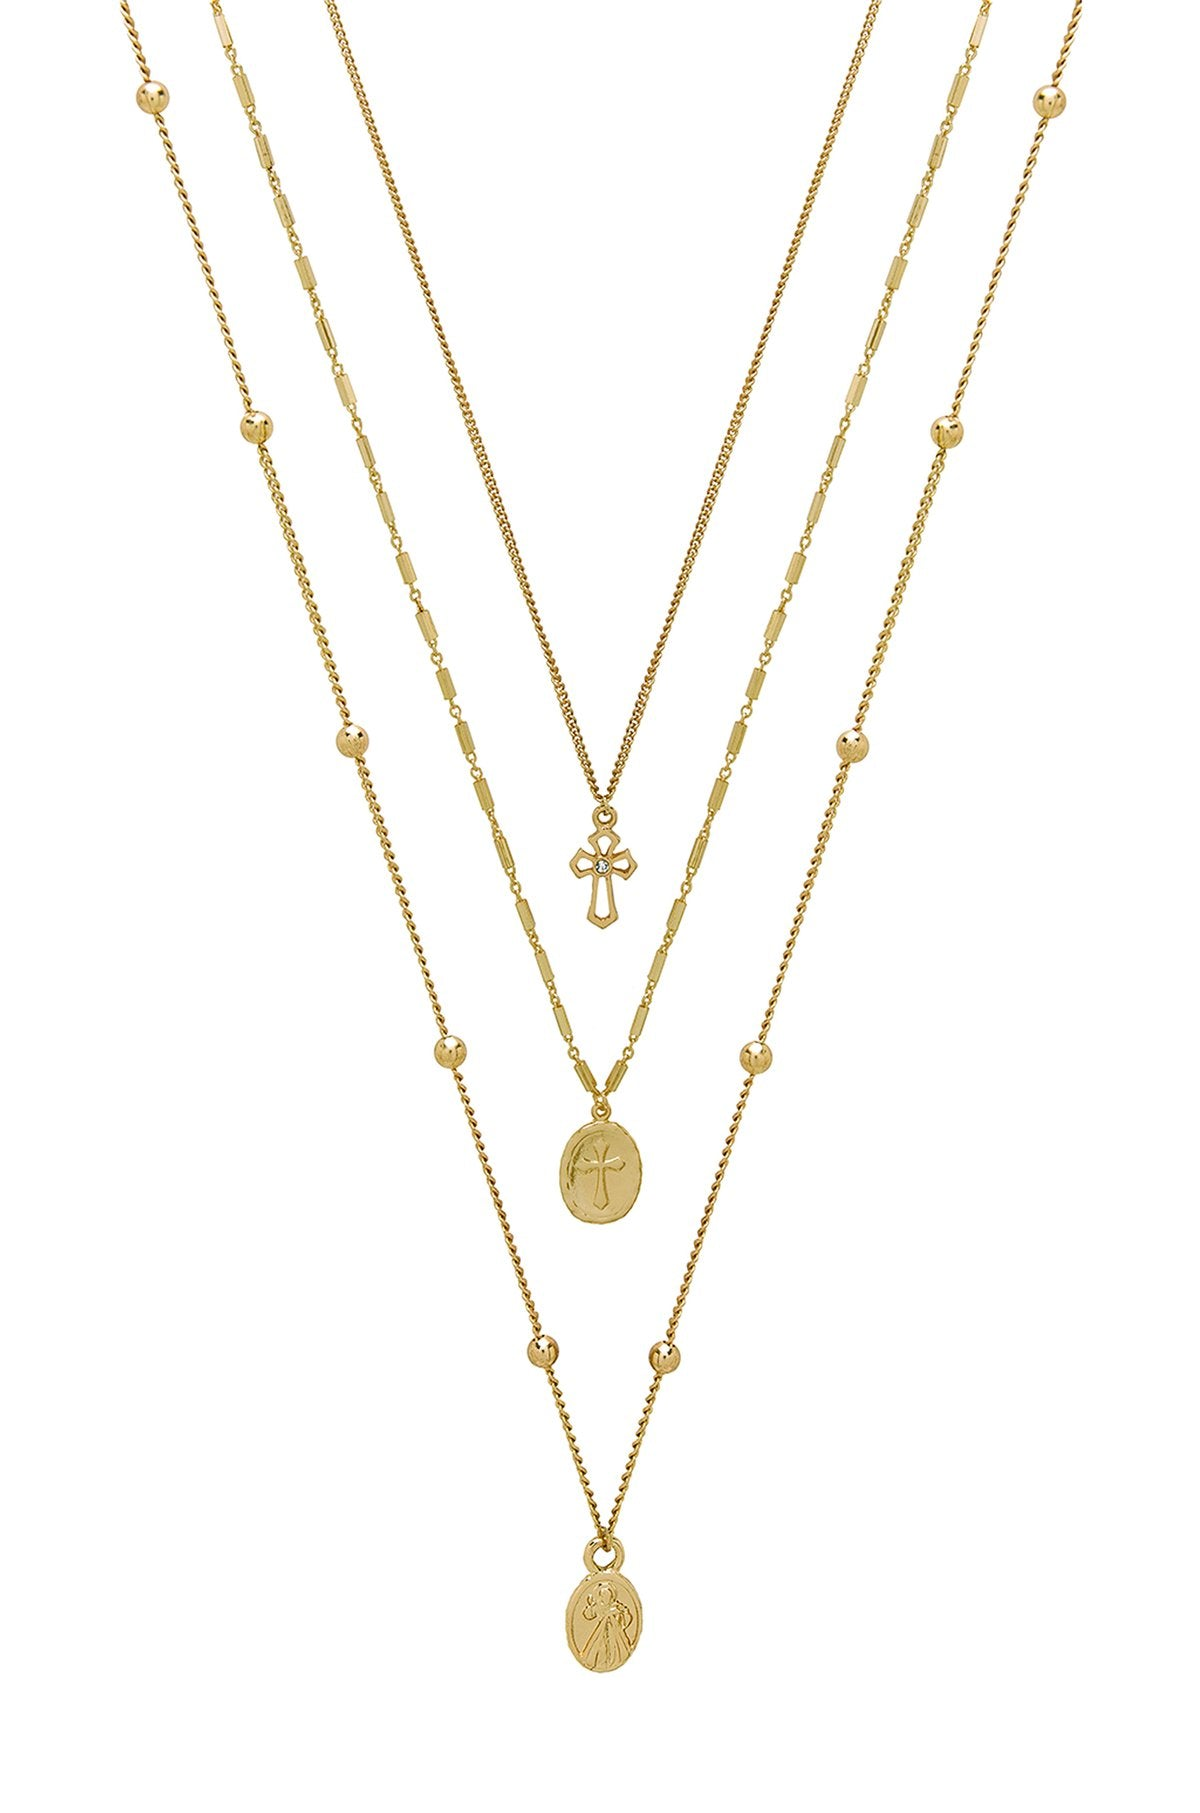 Ettika Let's Go Layers Necklace in Gold - House of Nima